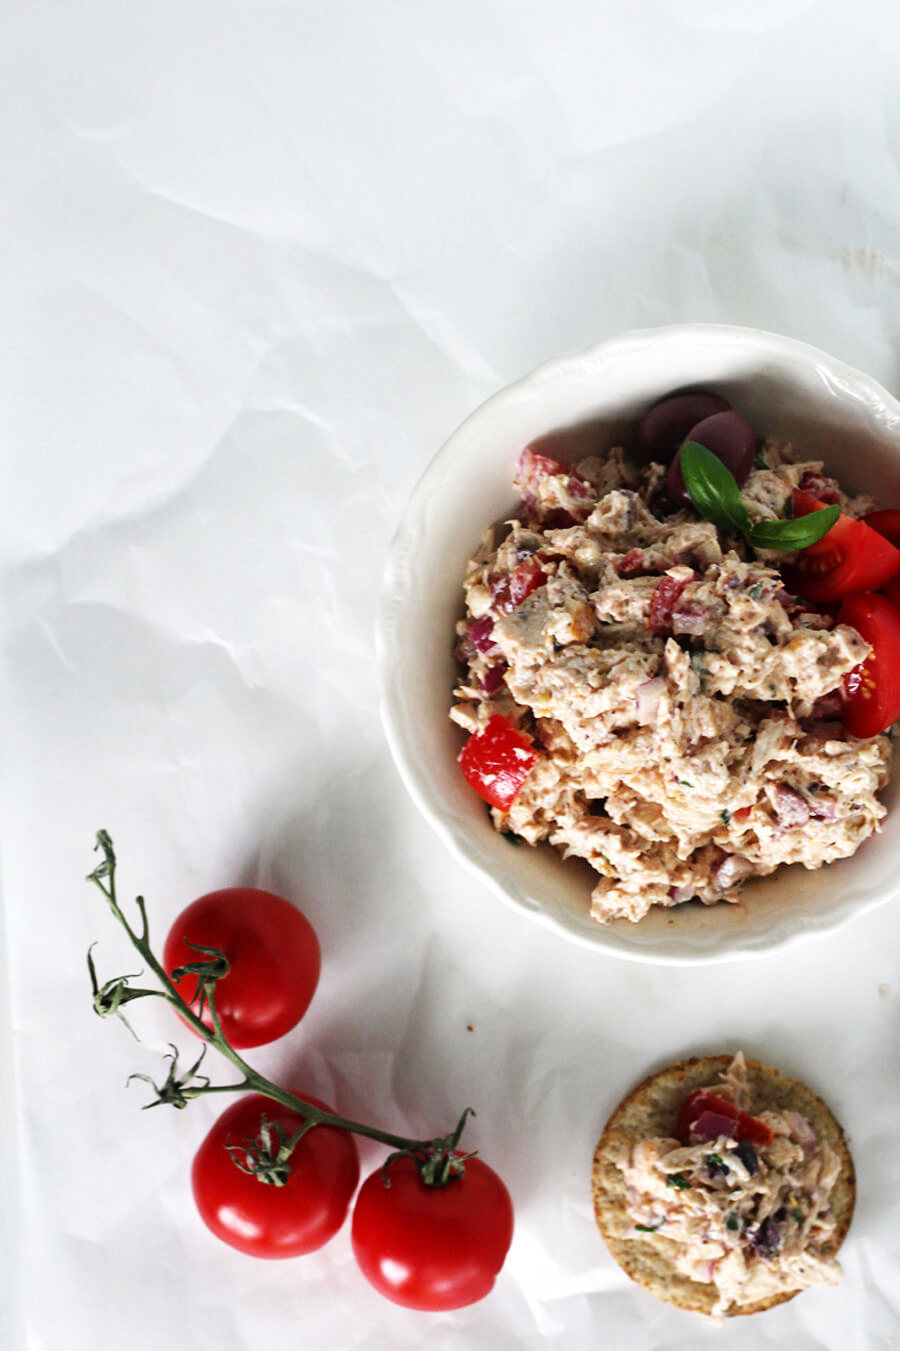 You'll love this Mediterranean Chicken Salad recipe. It's a guilt-free lunch with tender chicken, Greek yogurt dressing, Campari tomatoes, and Kalamata olives. A few surprise ingredients give this lightened up chicken salad a unique taste.